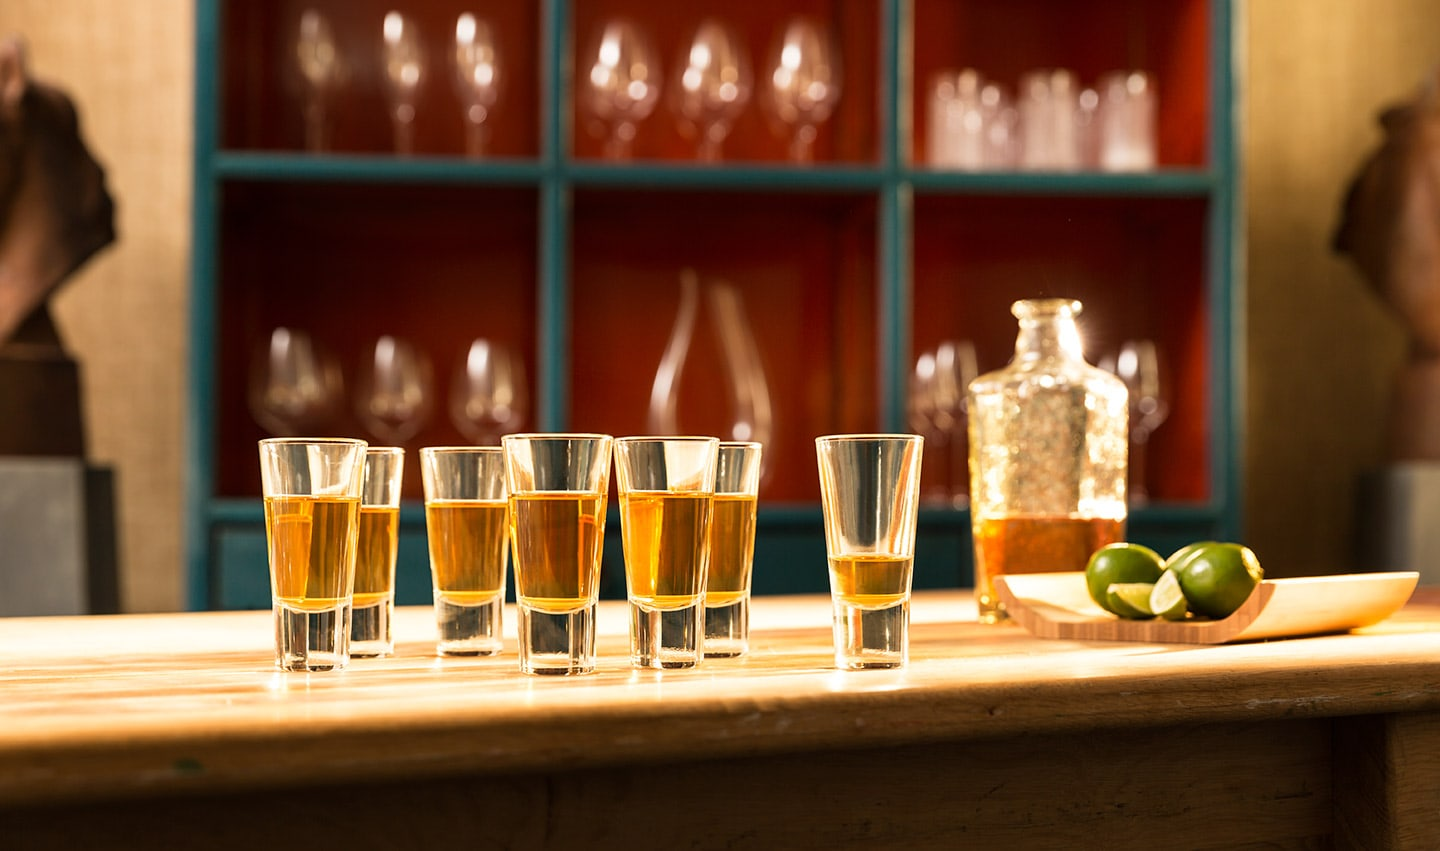 Tequila Shots and Limes on Bar Front Background Green Burgundy Square Cabinet